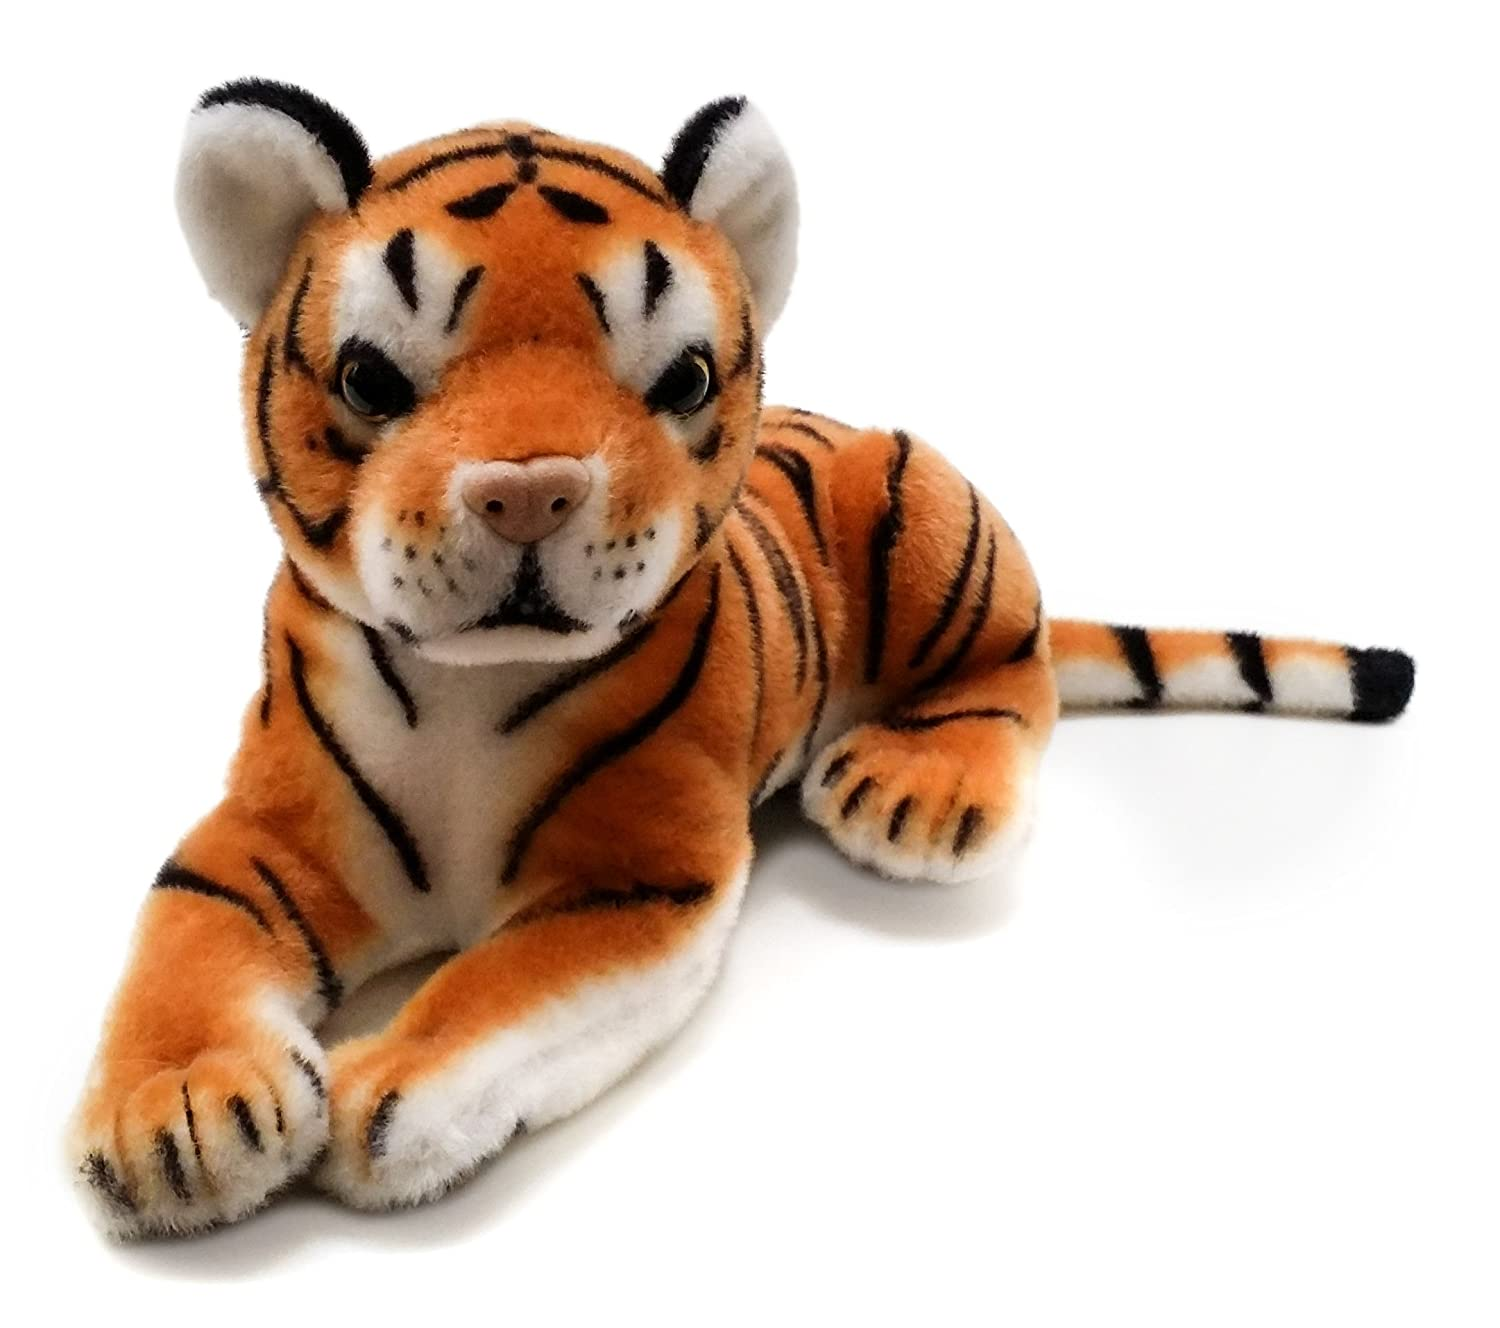 Animated baby tigers images